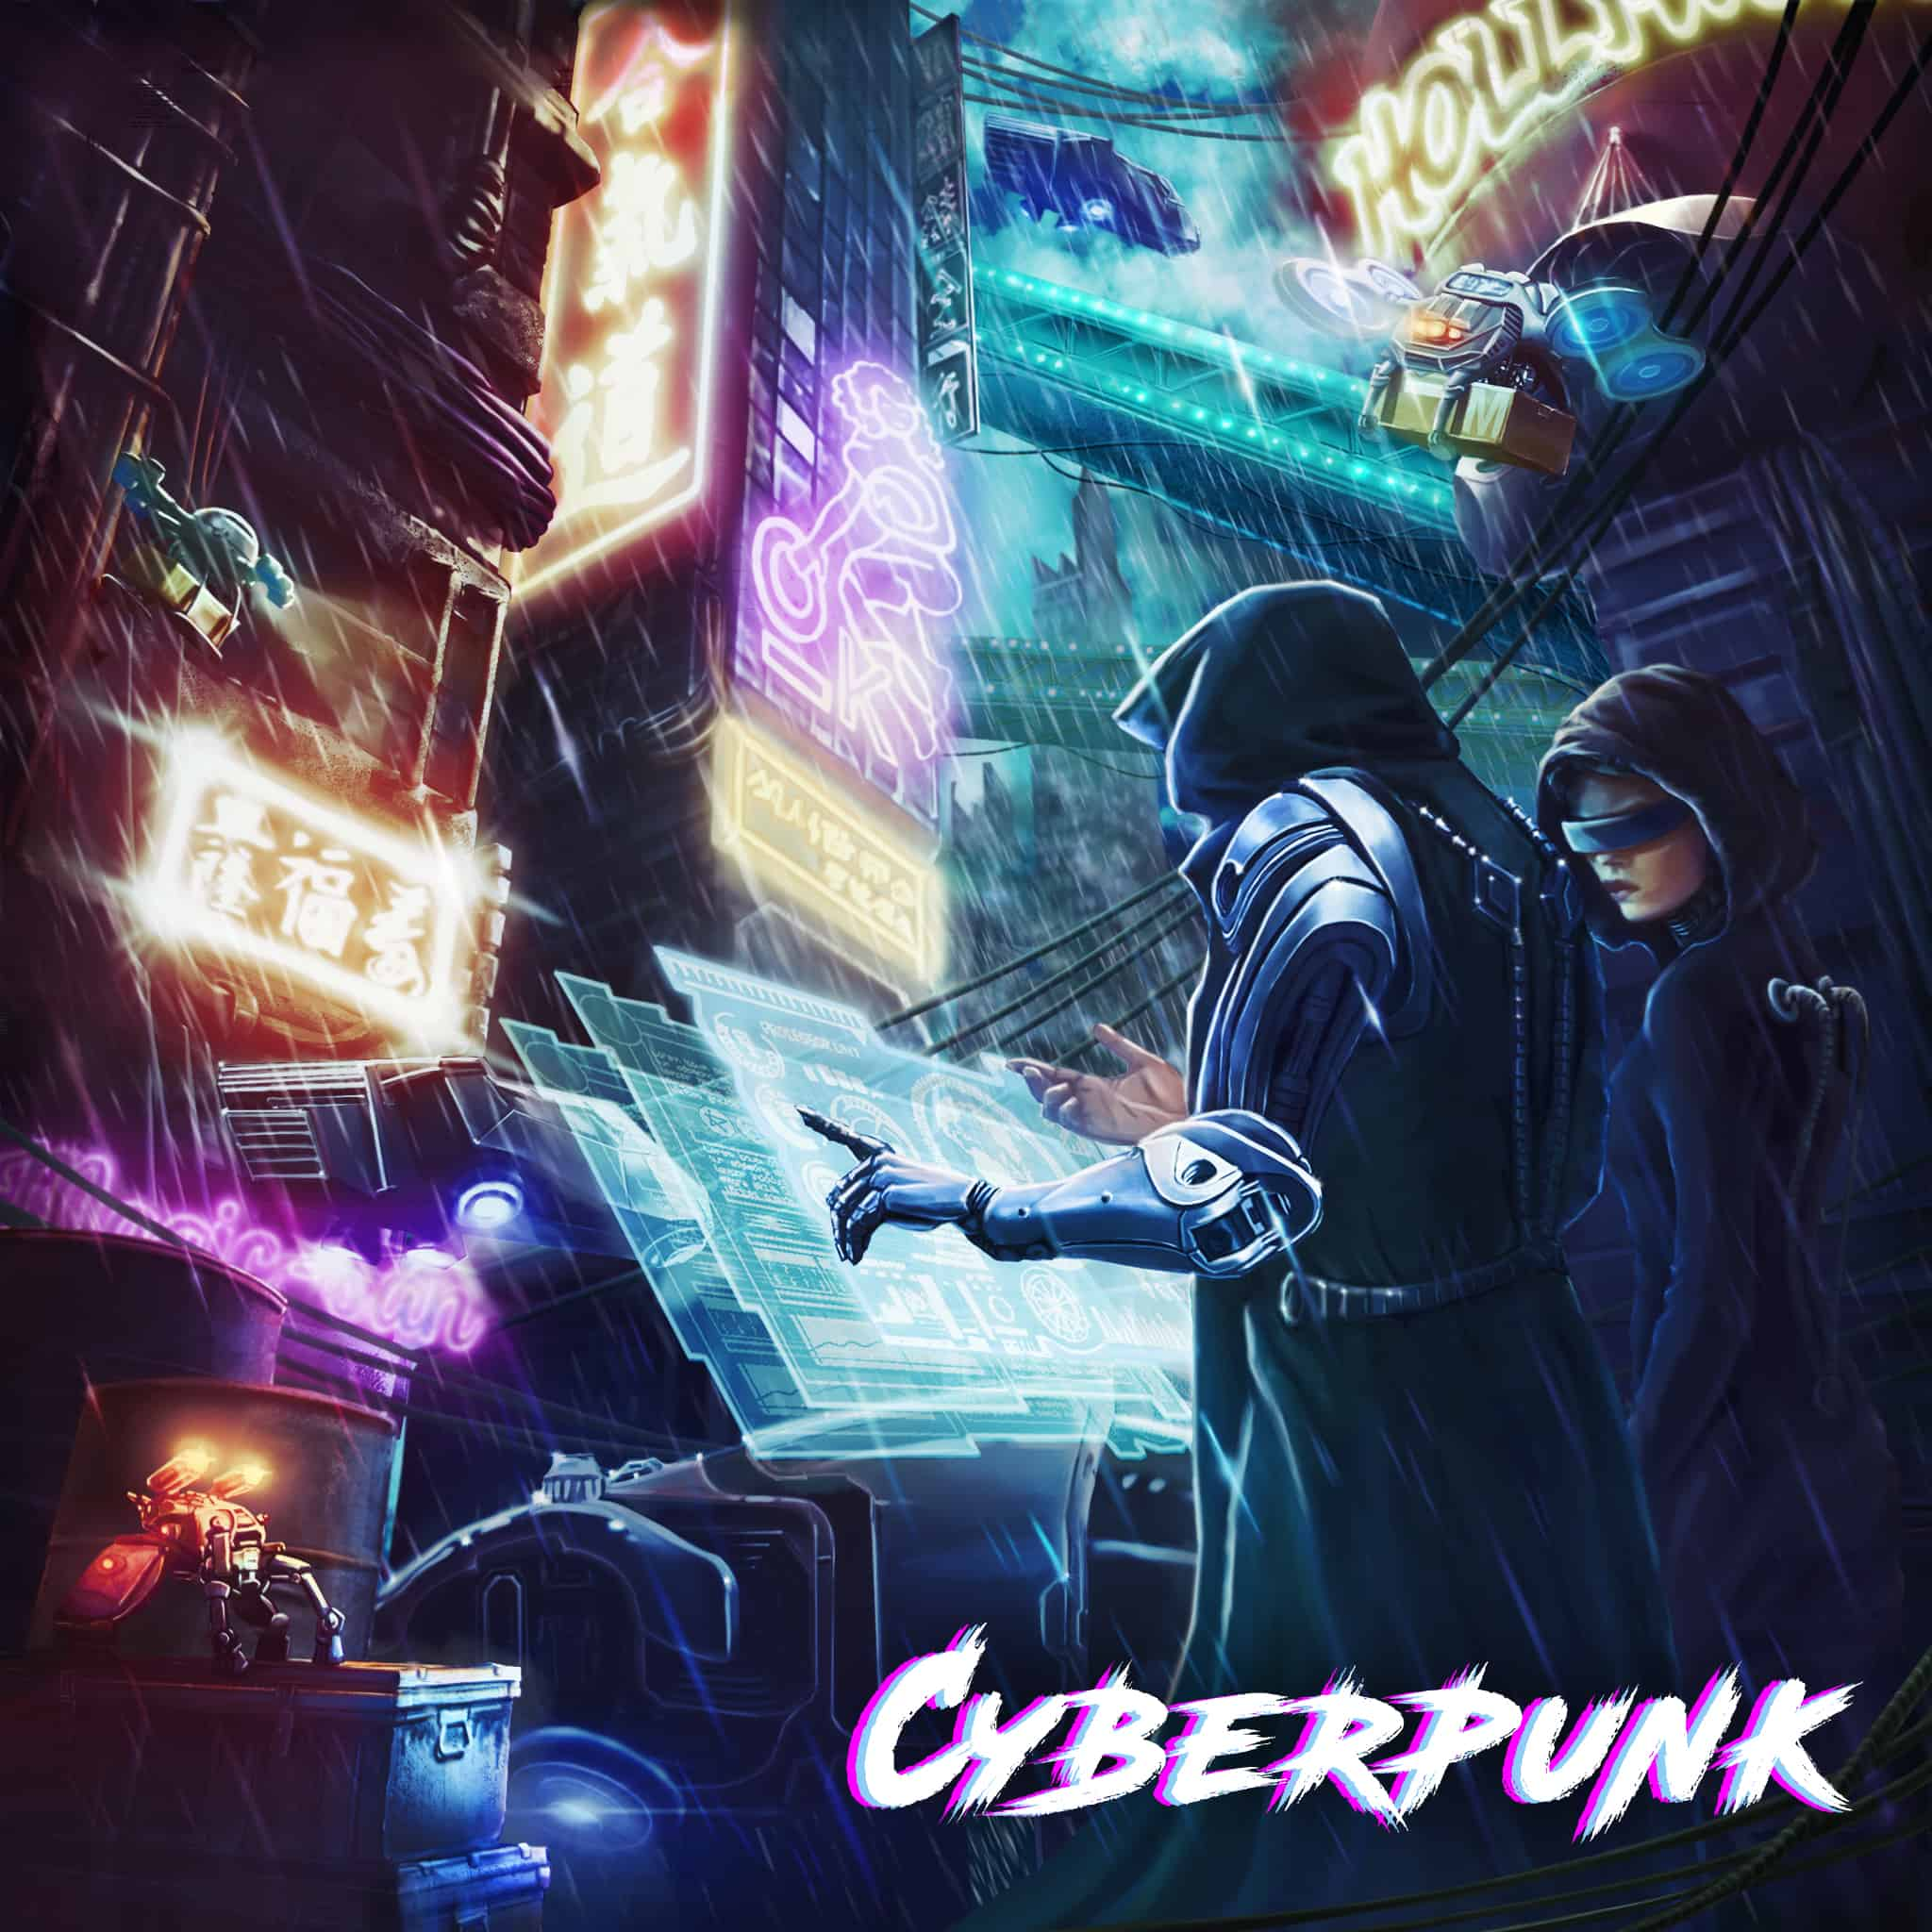 cyberpunk vr escape room